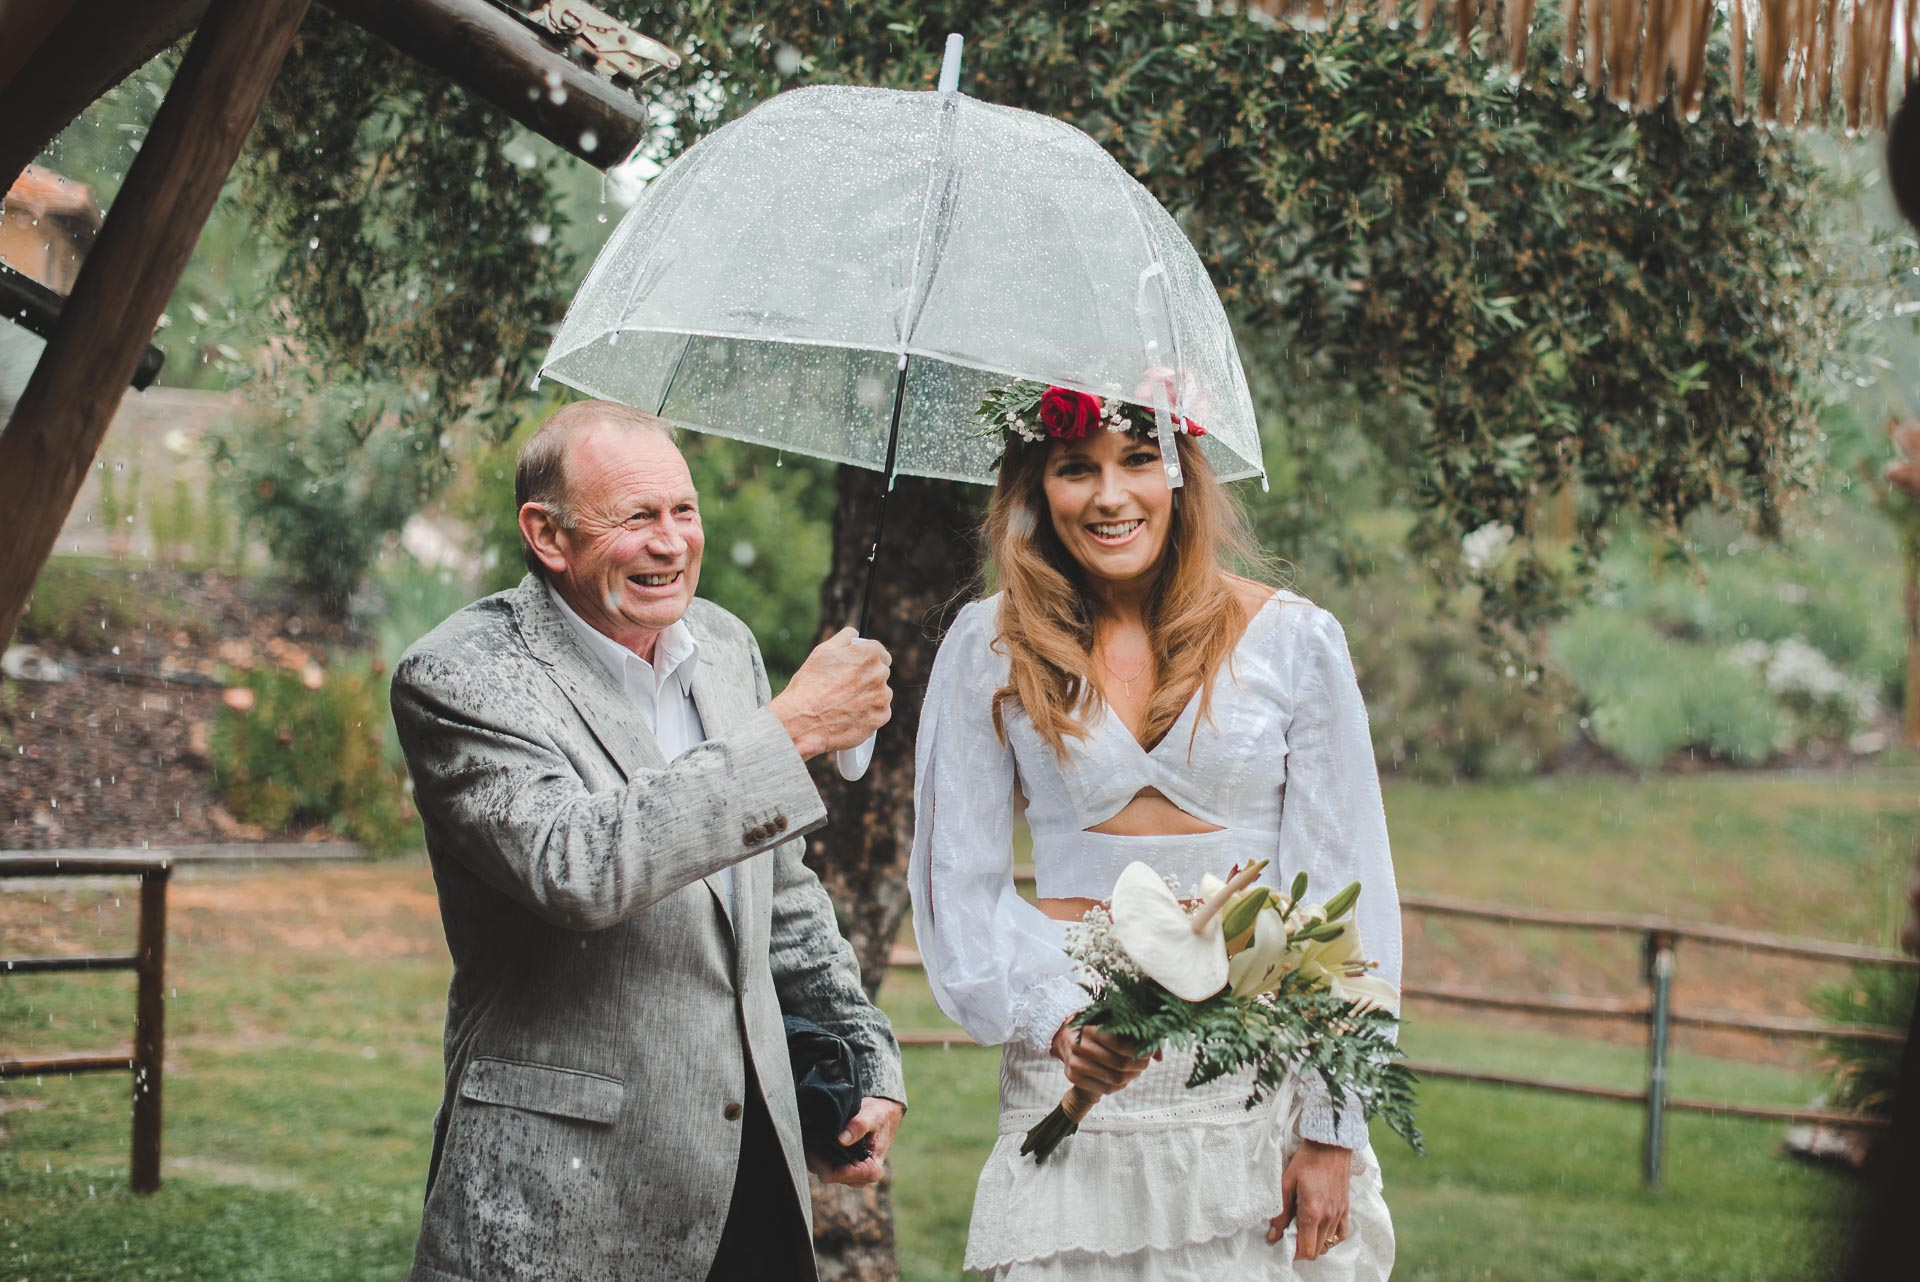 father and daughter wedding moment photography